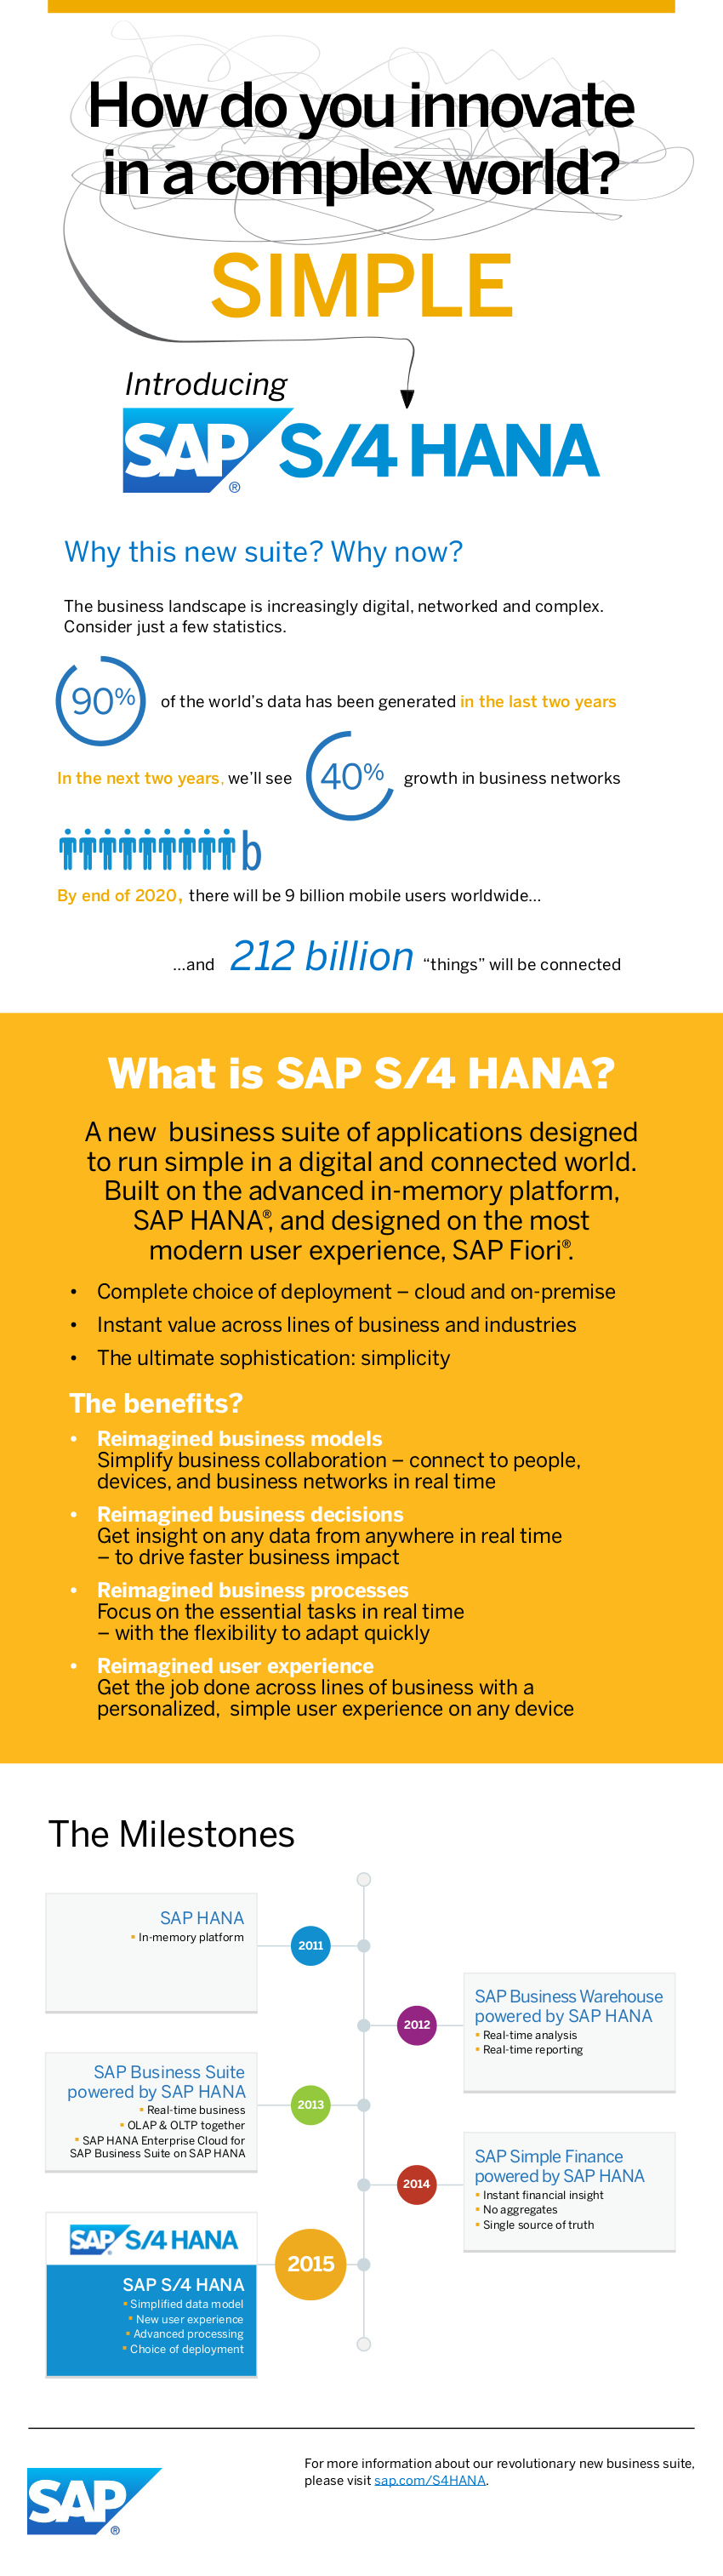 How do you innovate in a complex world? Introducing SAP S/4 HANA